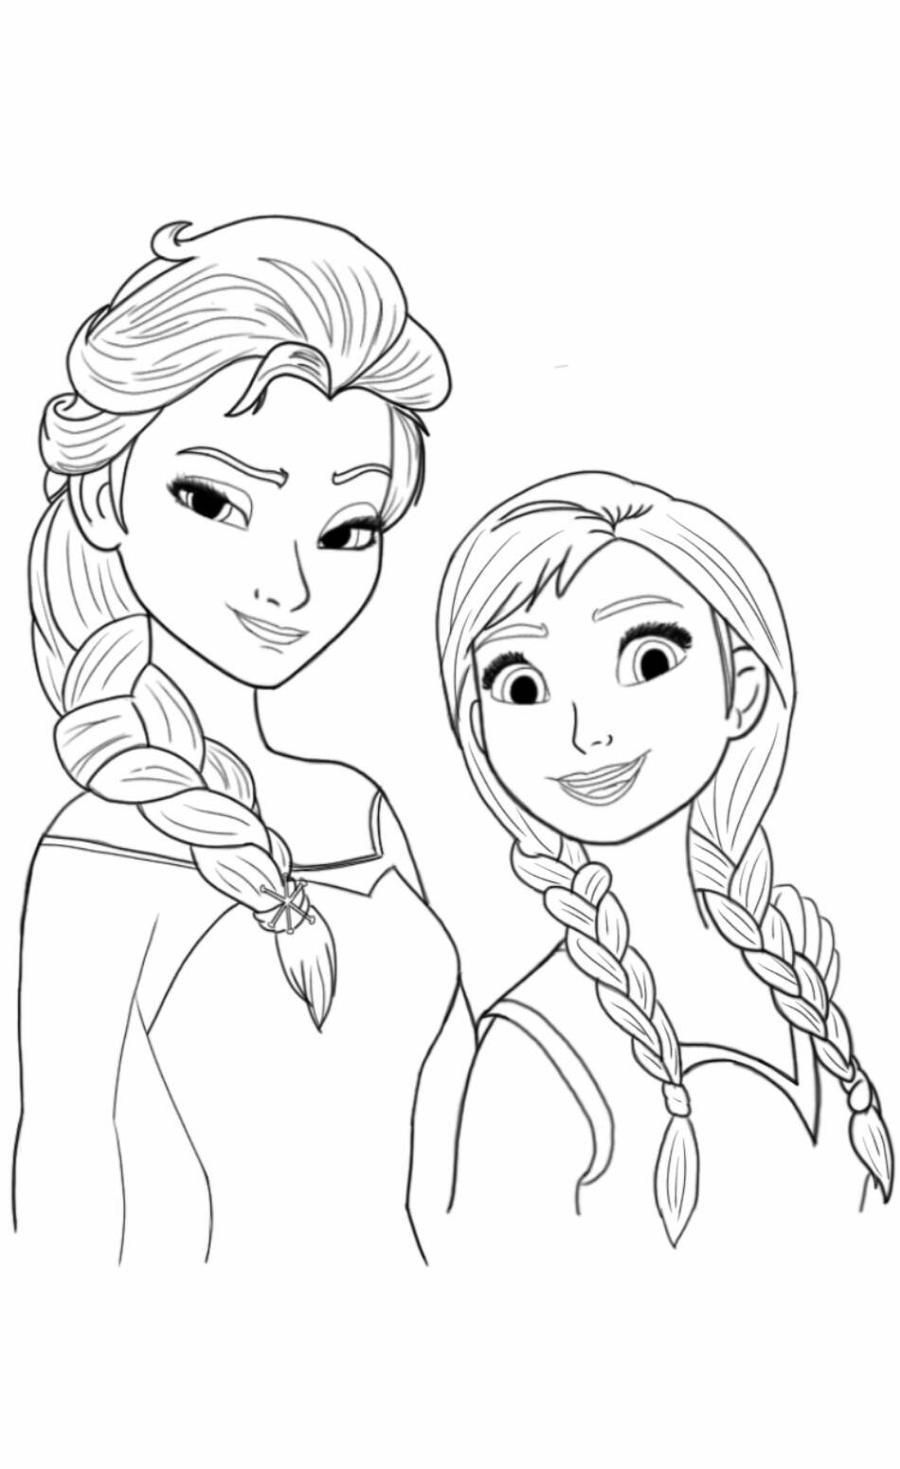 frozen elsa and anna coloring pages coloring pages elsa and anna frozen print a4 size for free coloring anna pages and frozen elsa